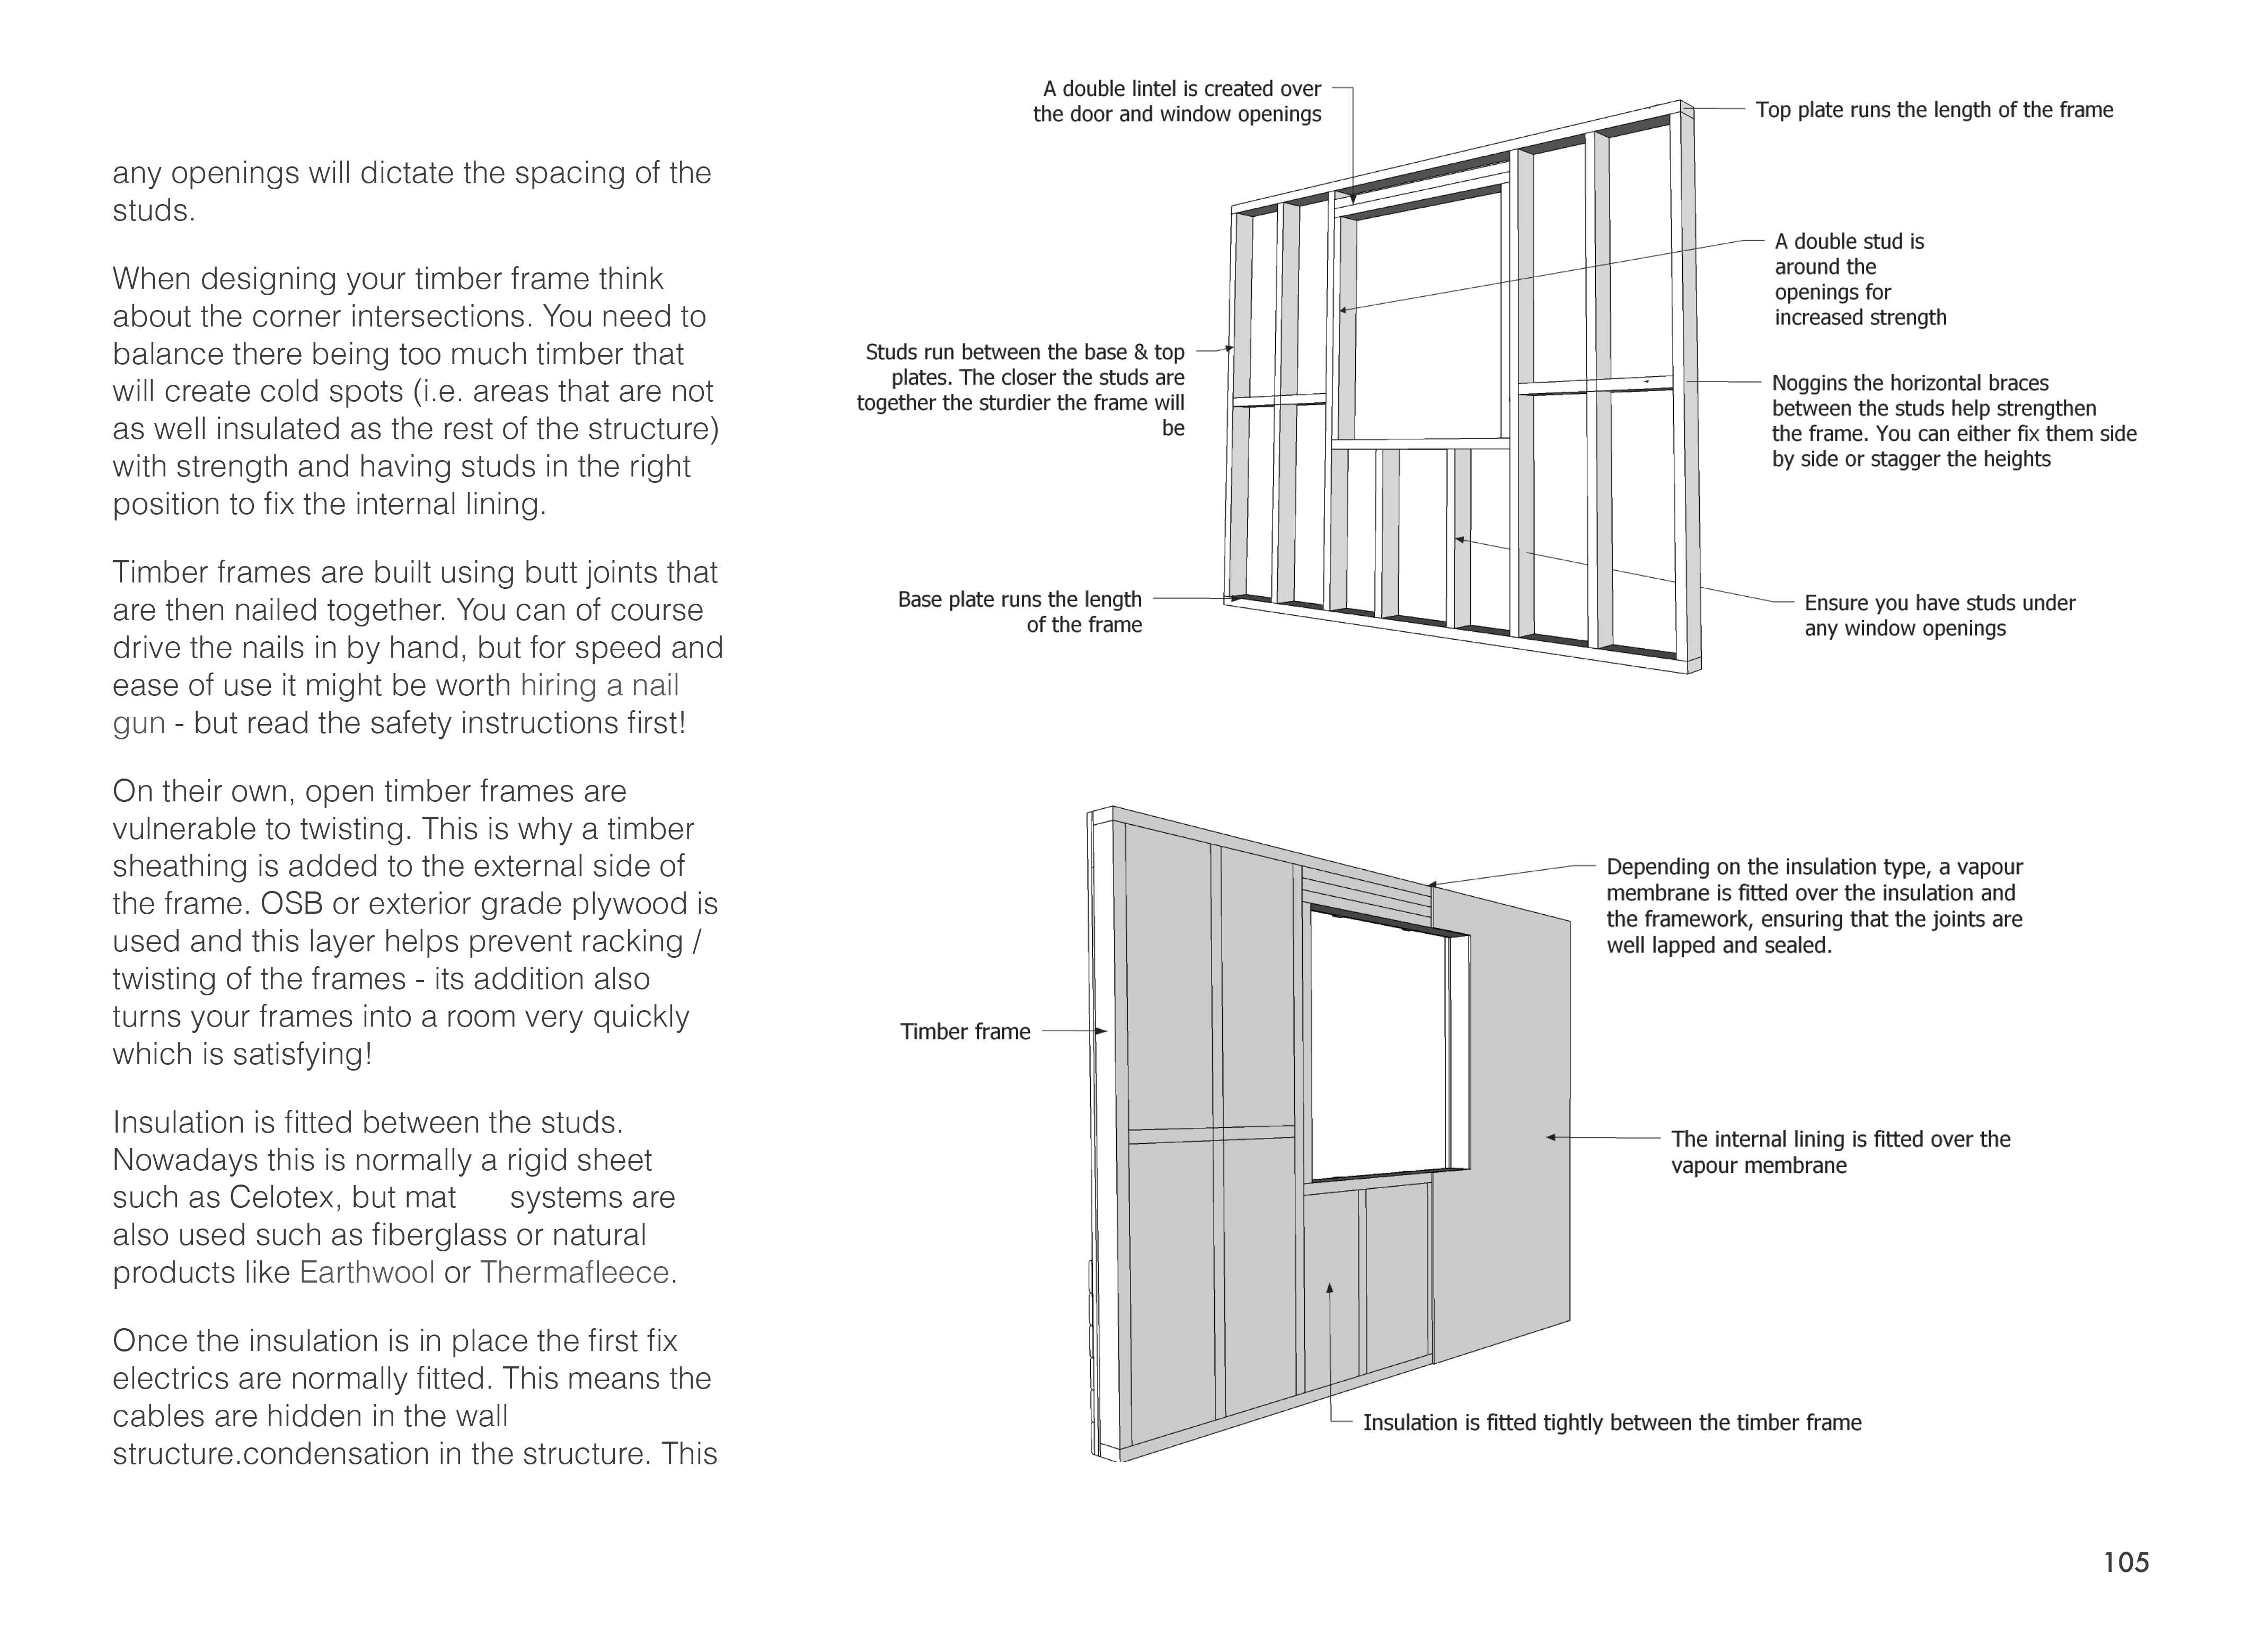 The Self Build Guide (@SelfBuildGuide) | Twitter